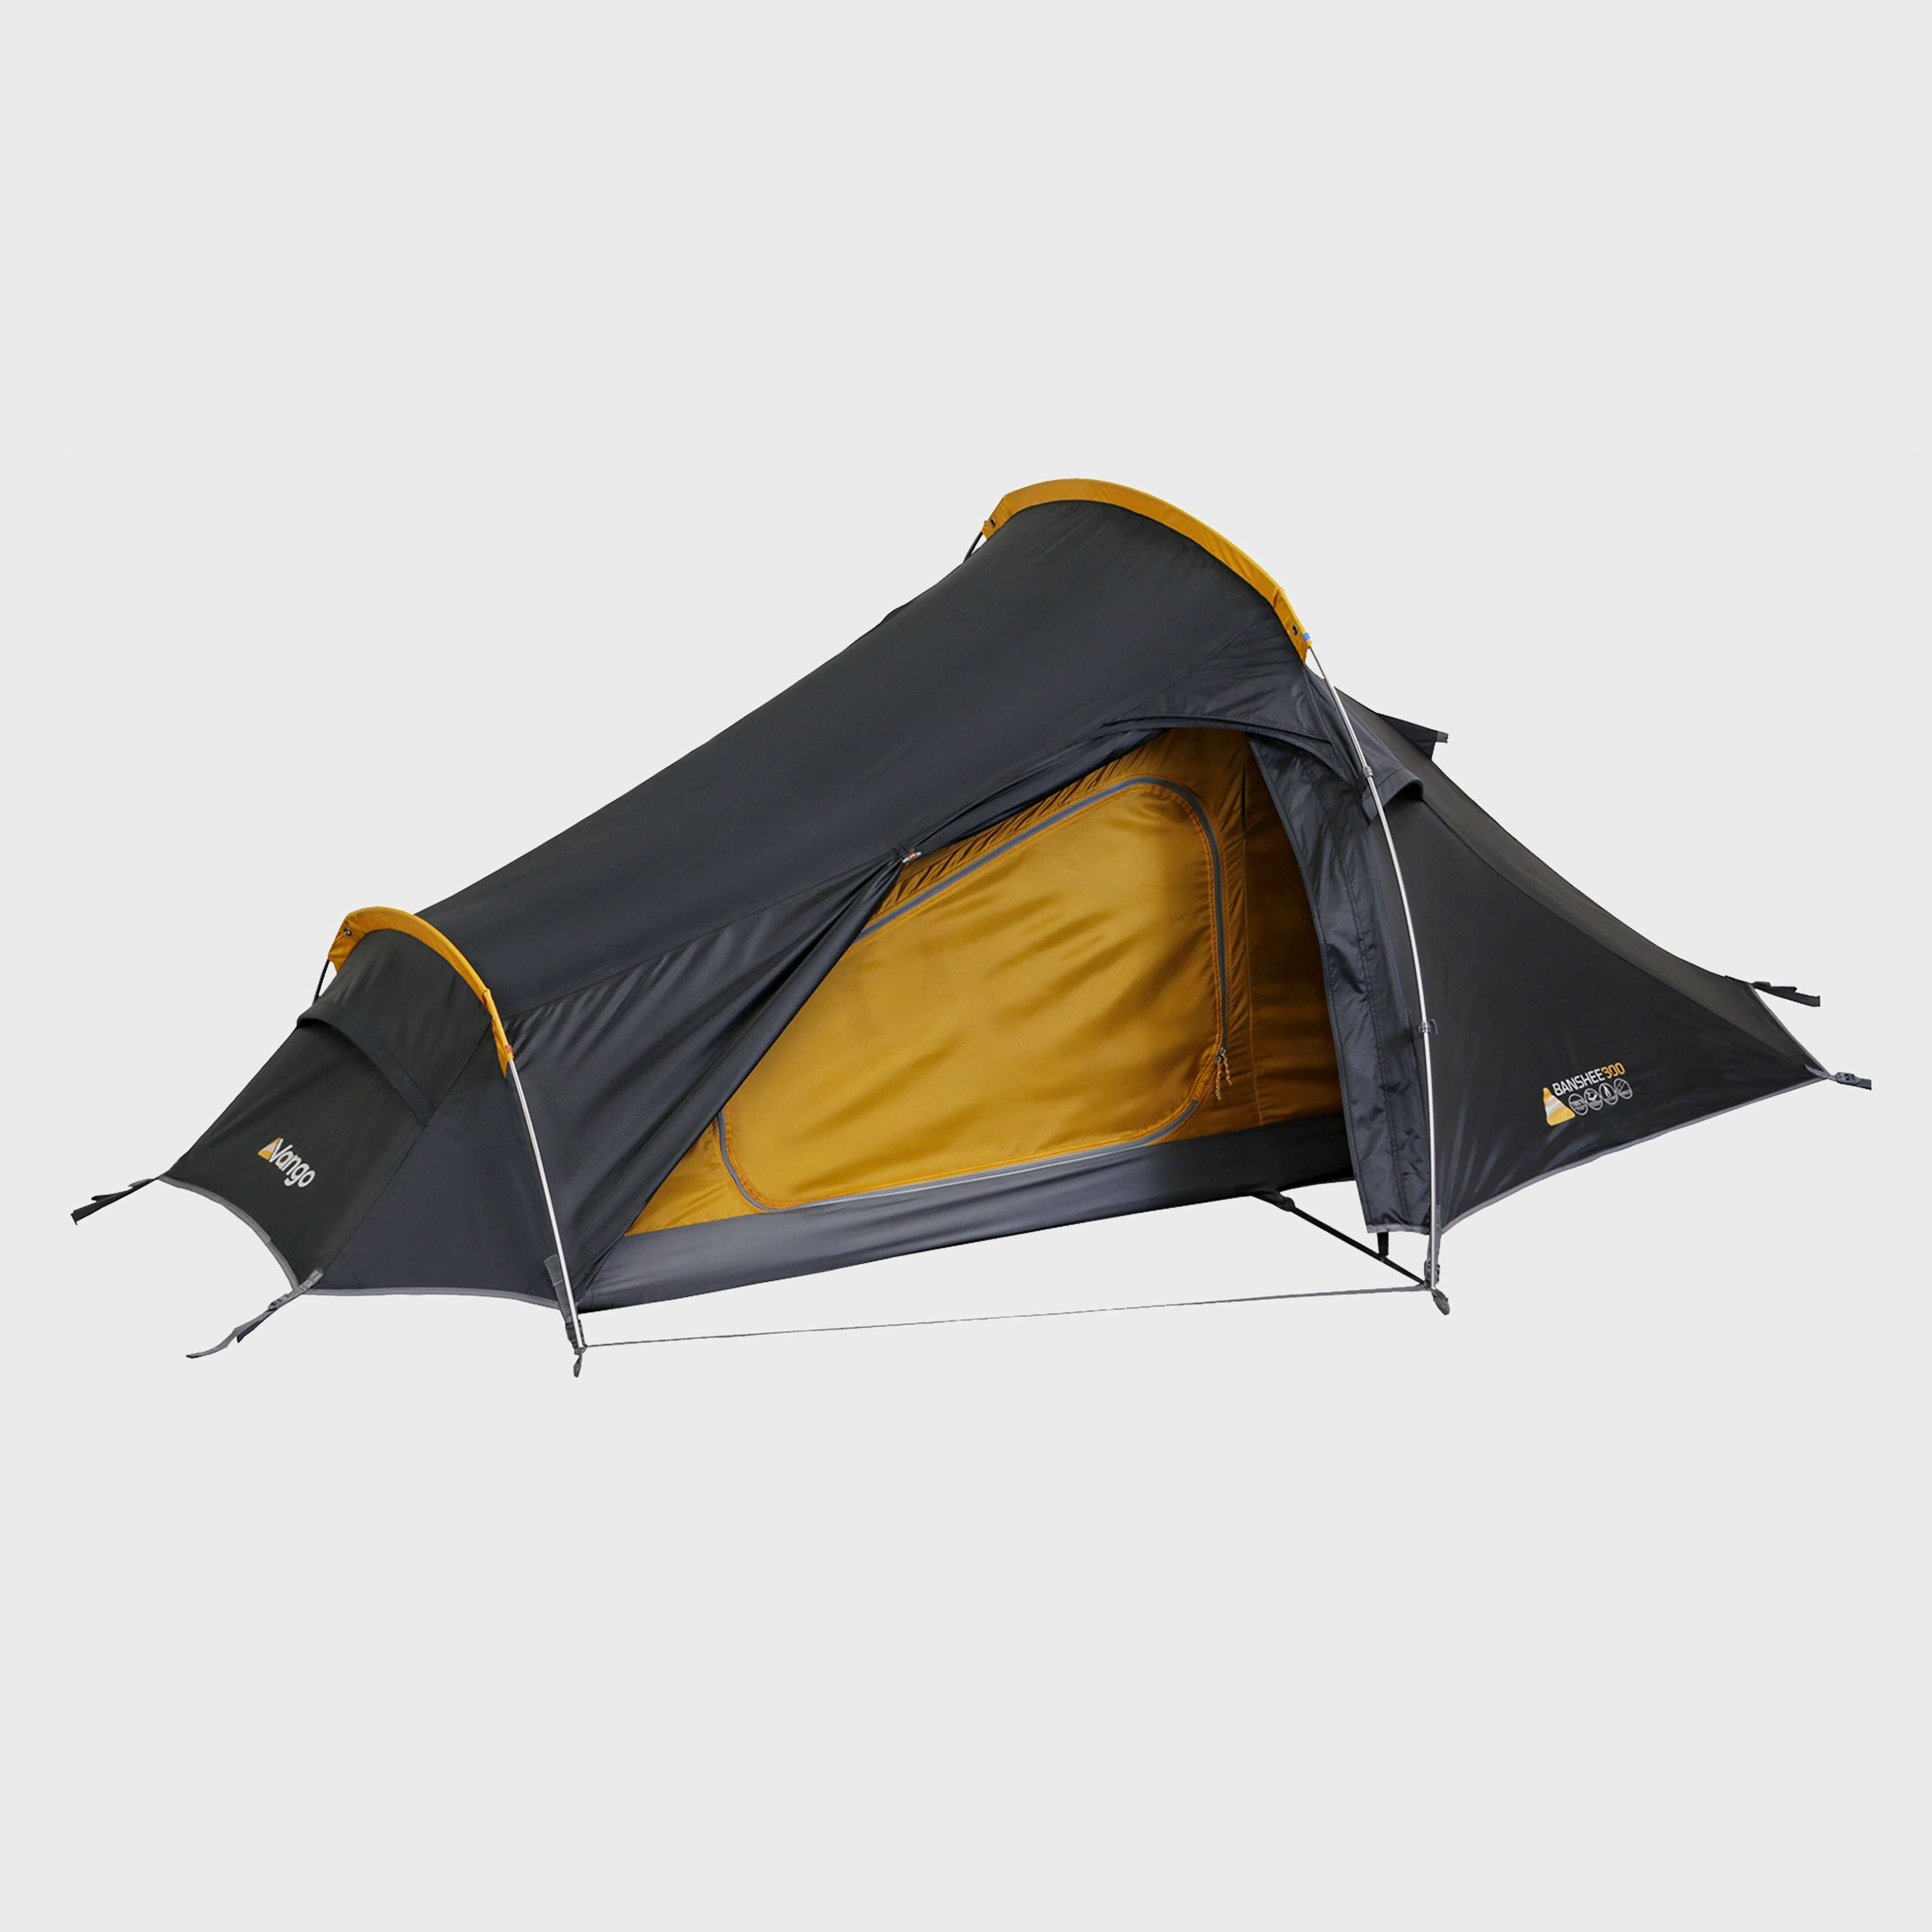 VANGO Banshee 300 3 Person Tent